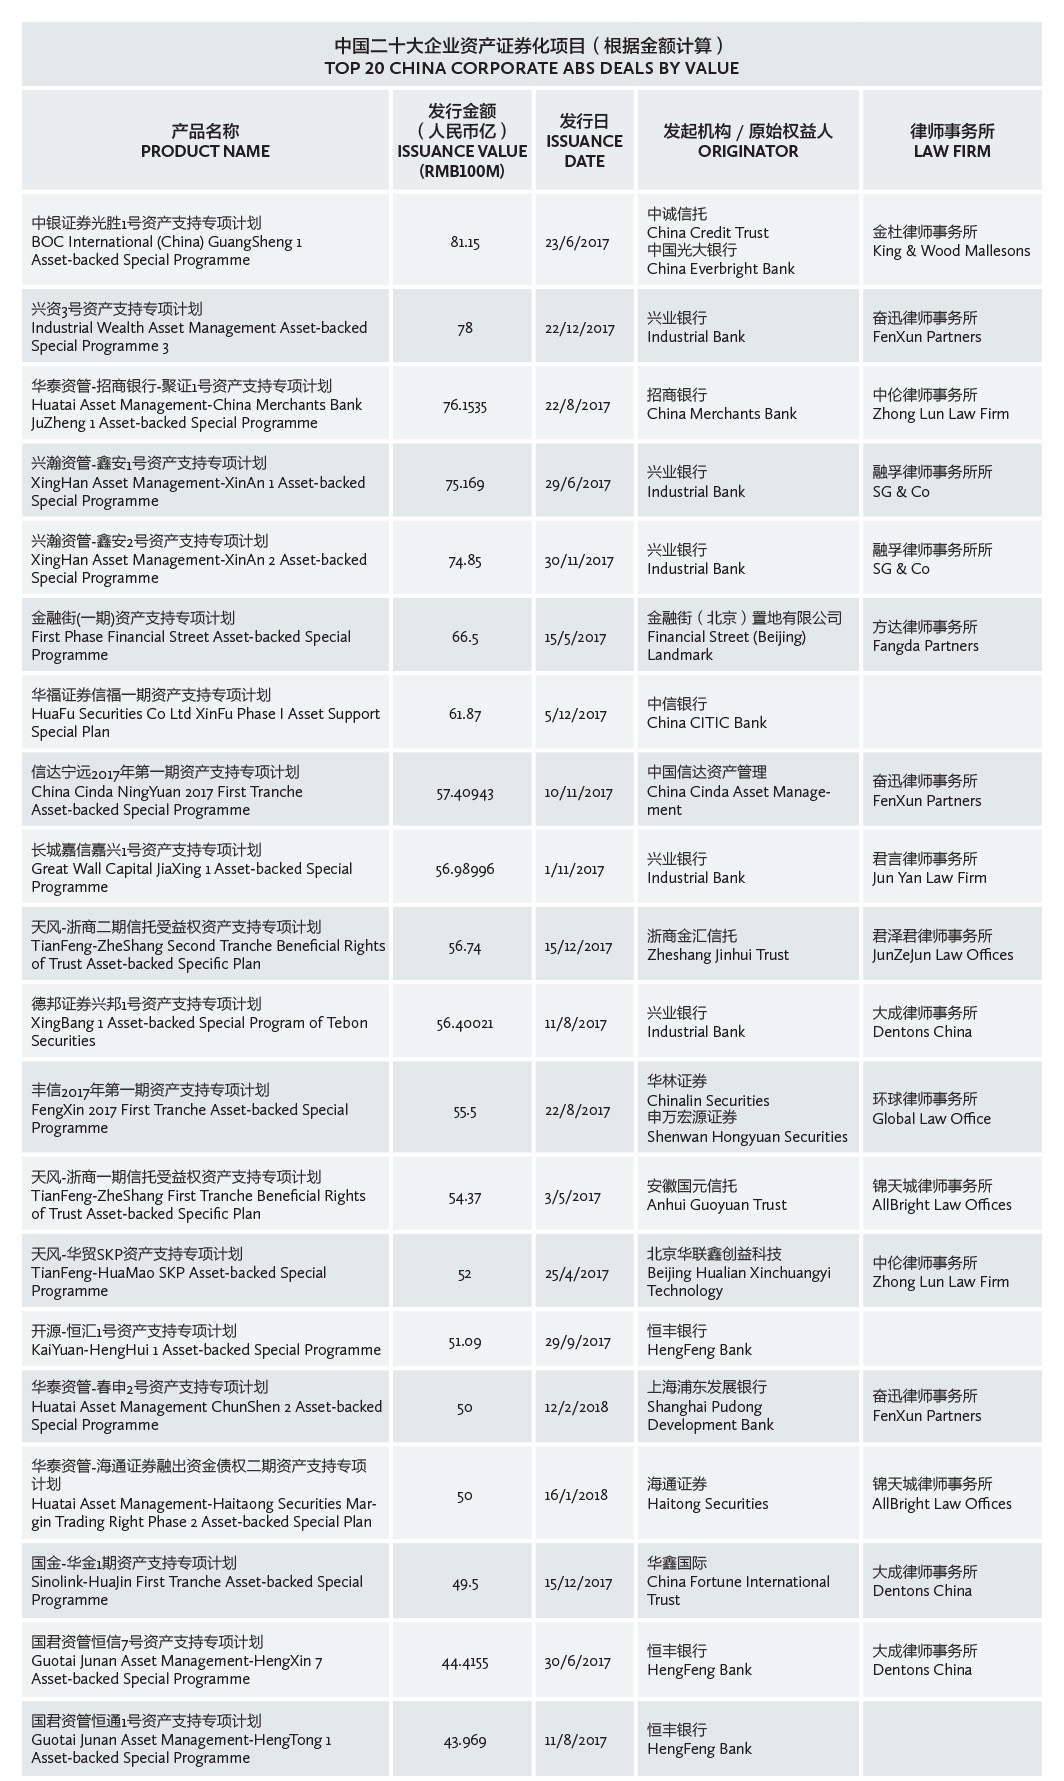 TOP 20 CHINA CORPORATE ABS DEALS BY VALUE